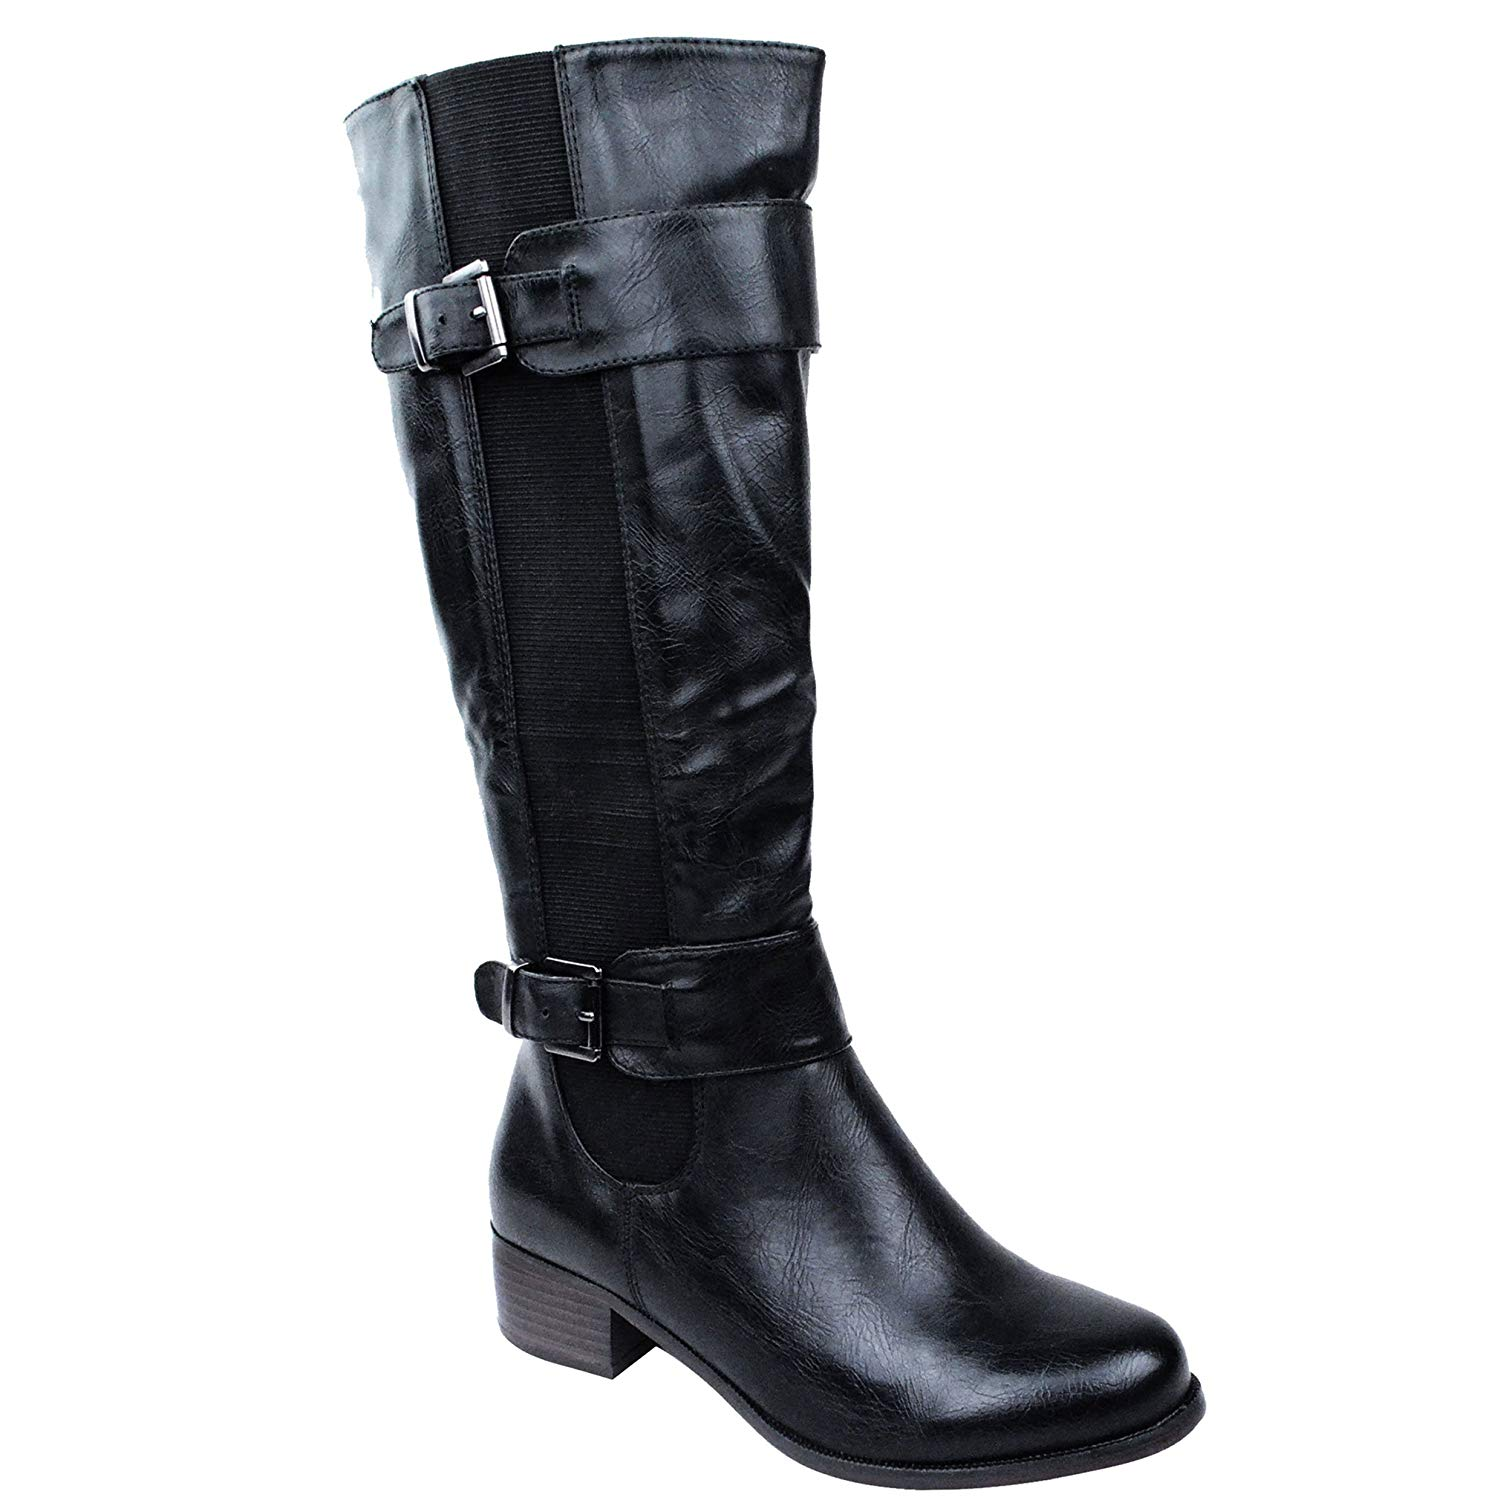 b3f1d56f818e Get Quotations · Fashion Thirsty Womens Elasticated Faux Leather Riding  Knee Wide Calf High Shoe Boot Size